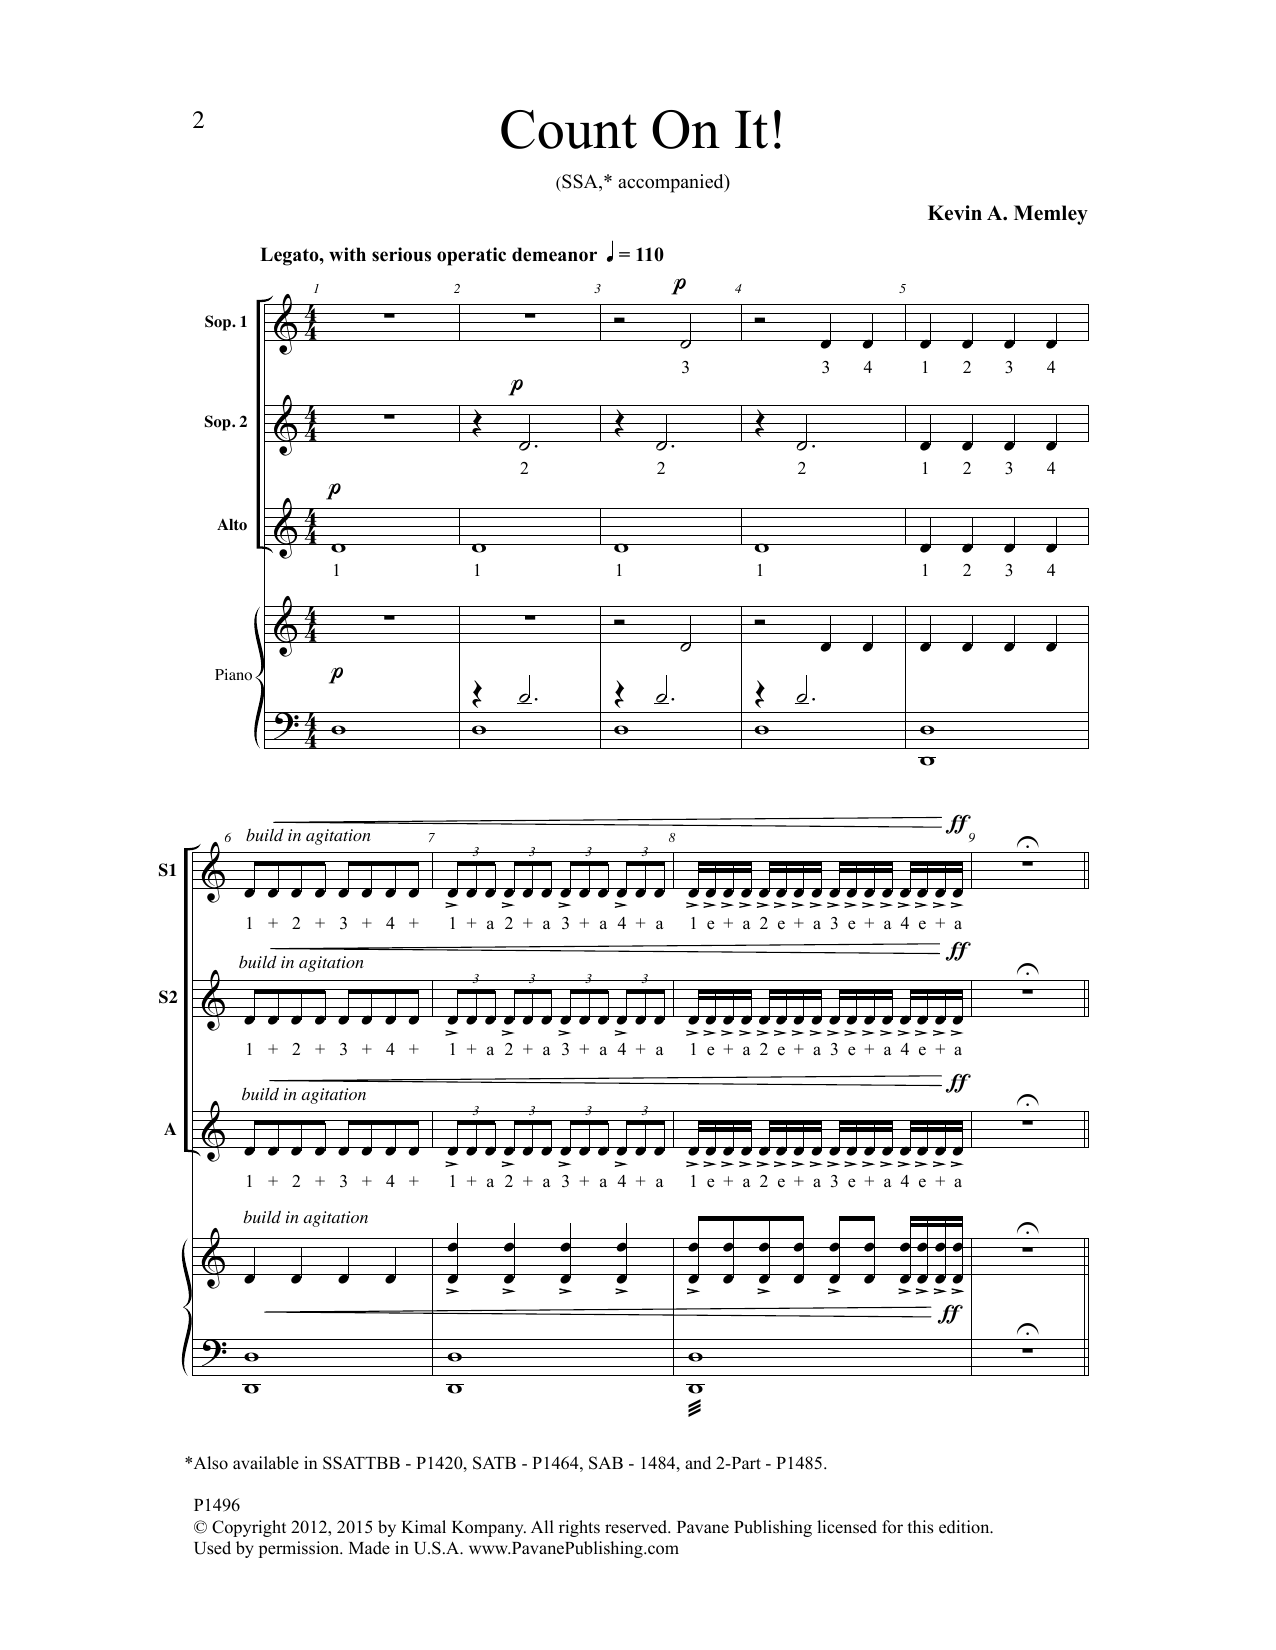 Count On It Sheet Music